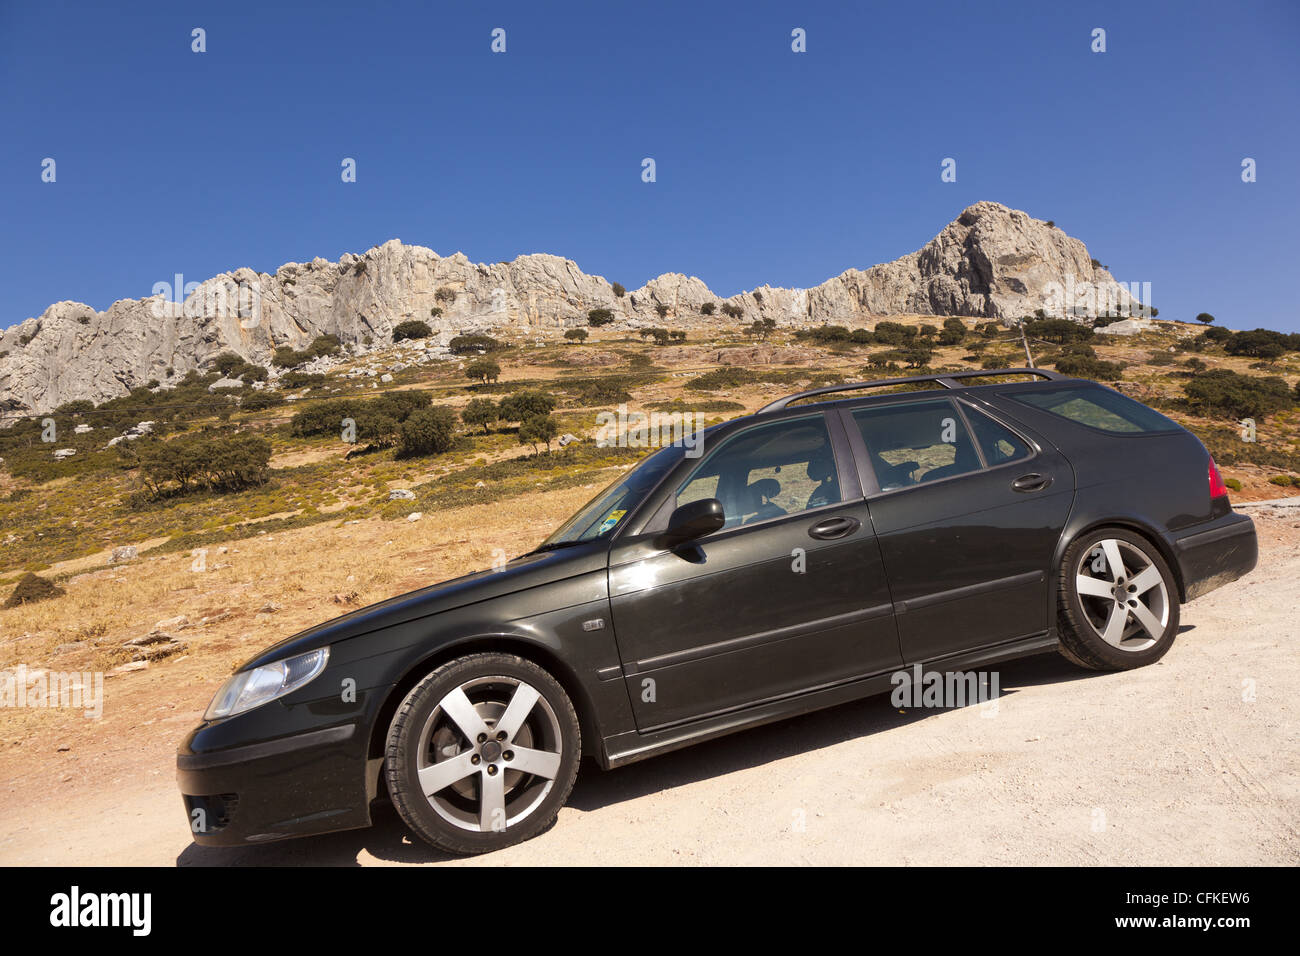 Saab 9-5 2.3 HOT Aero Turbo Automatic against a a backdrop of blue sky and rocky outcrops. Puerto del Vienta, Andalusia, - Stock Image